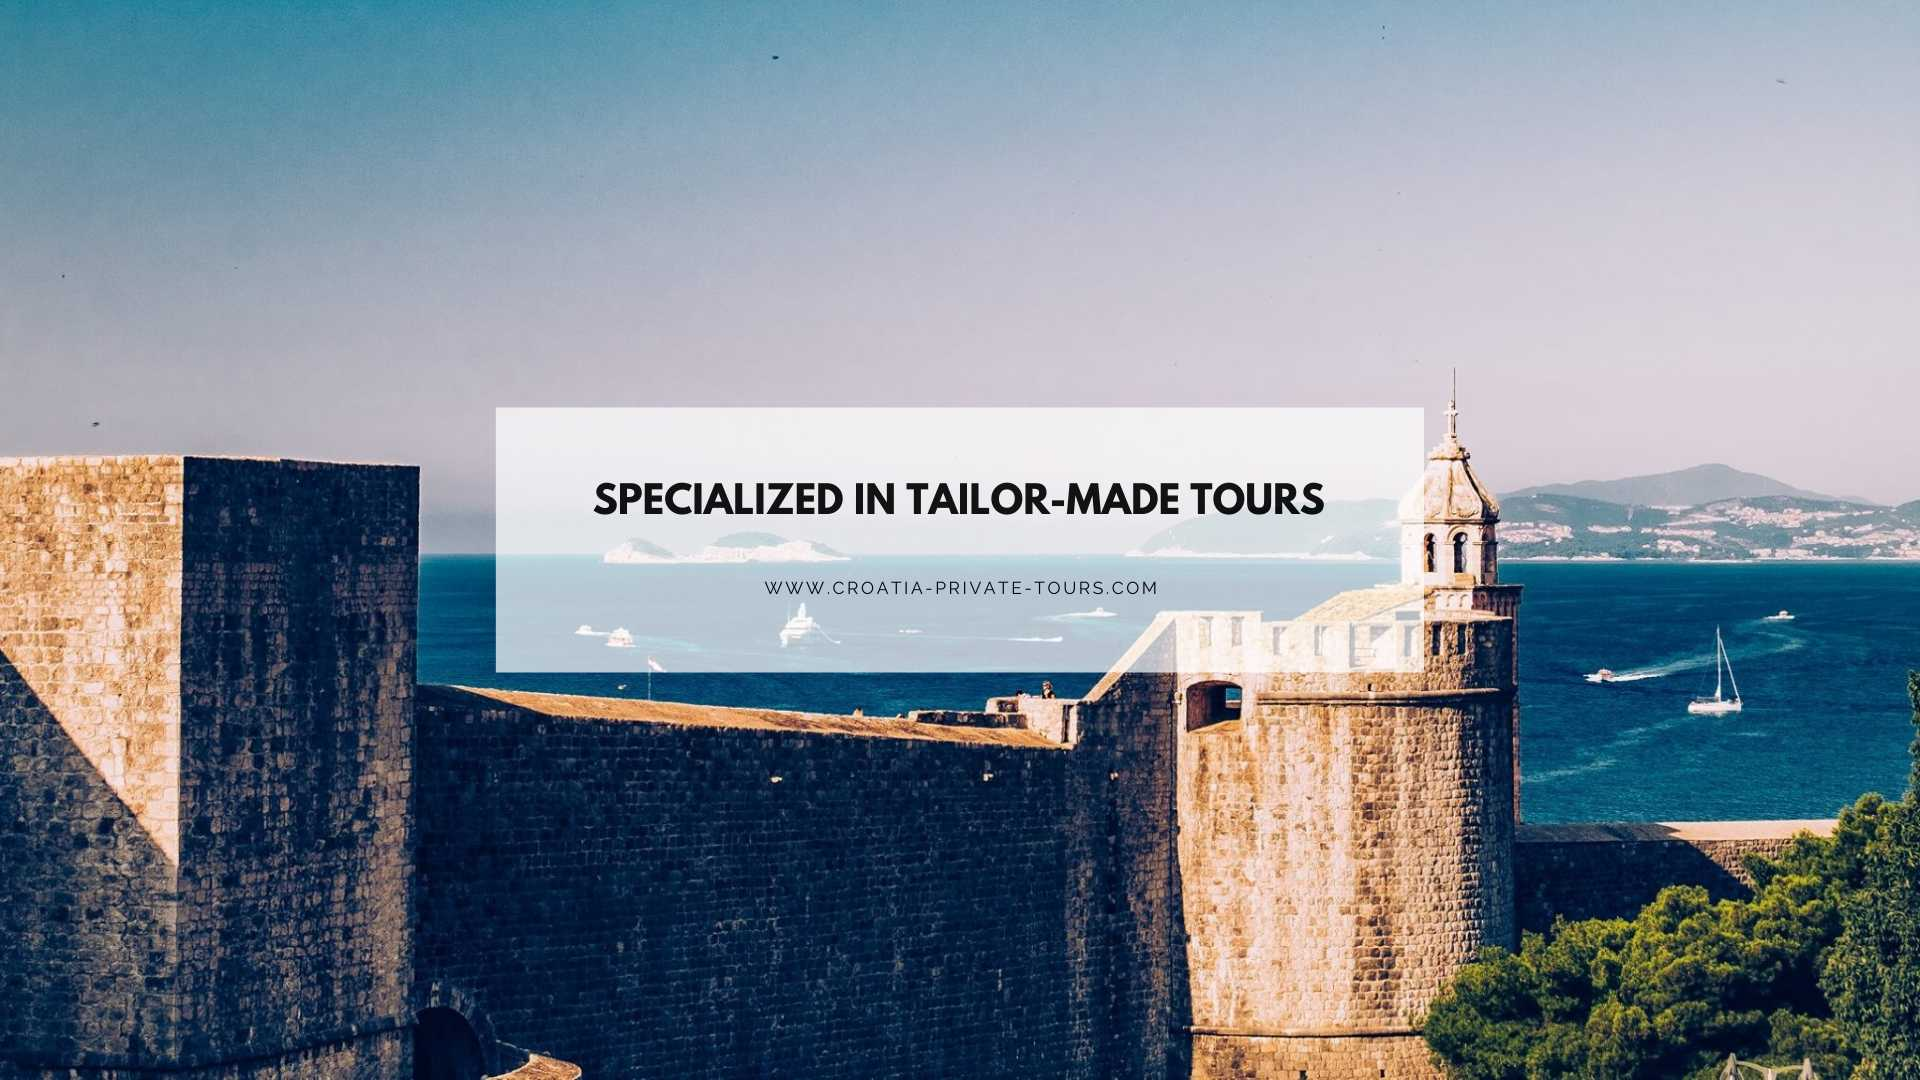 croatia private tours - your tour specialist for croatia